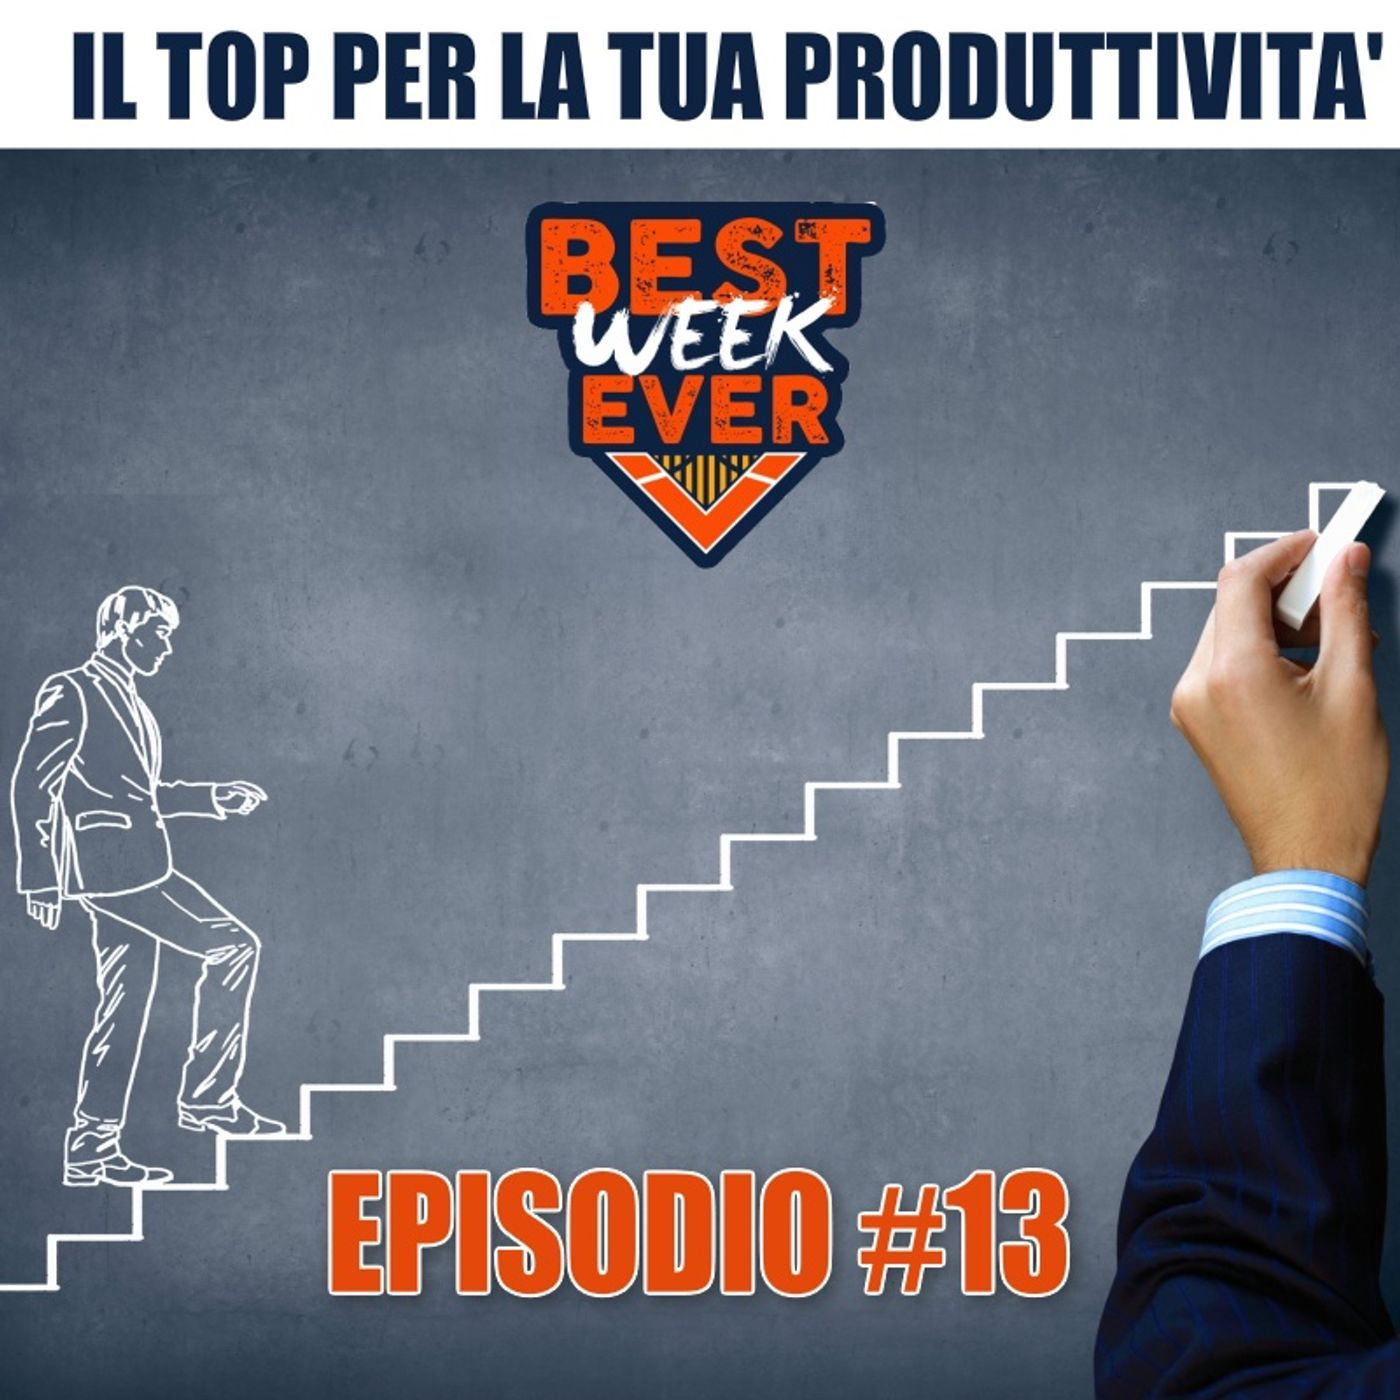 Episodio 13 - Reason Why, Tom Morkes, Freepik, Magia svelata